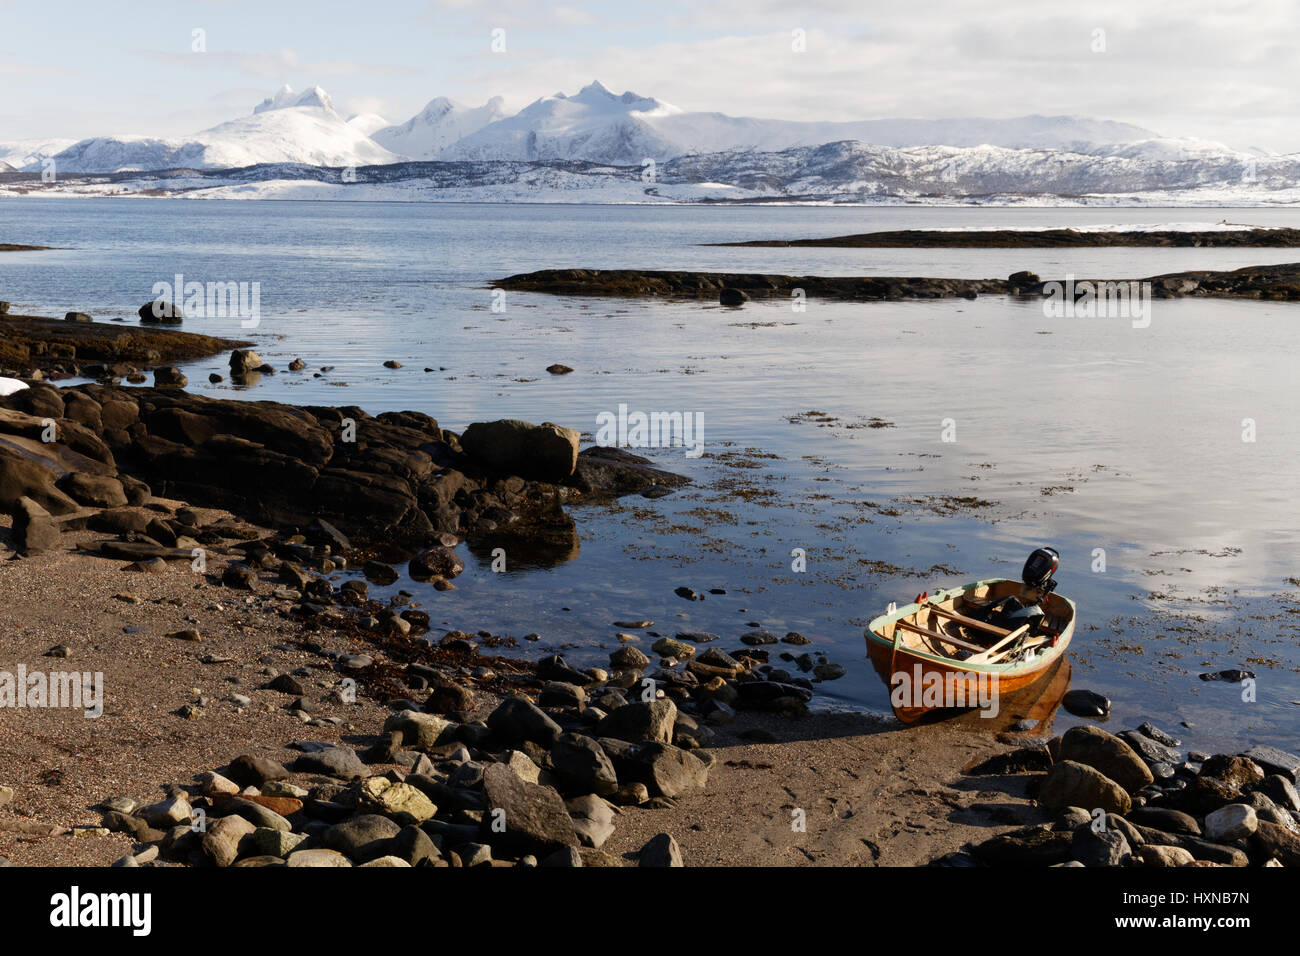 Evening idyll at the coast of Saltfjorden in Bodø, Northern Norway - Stock Image